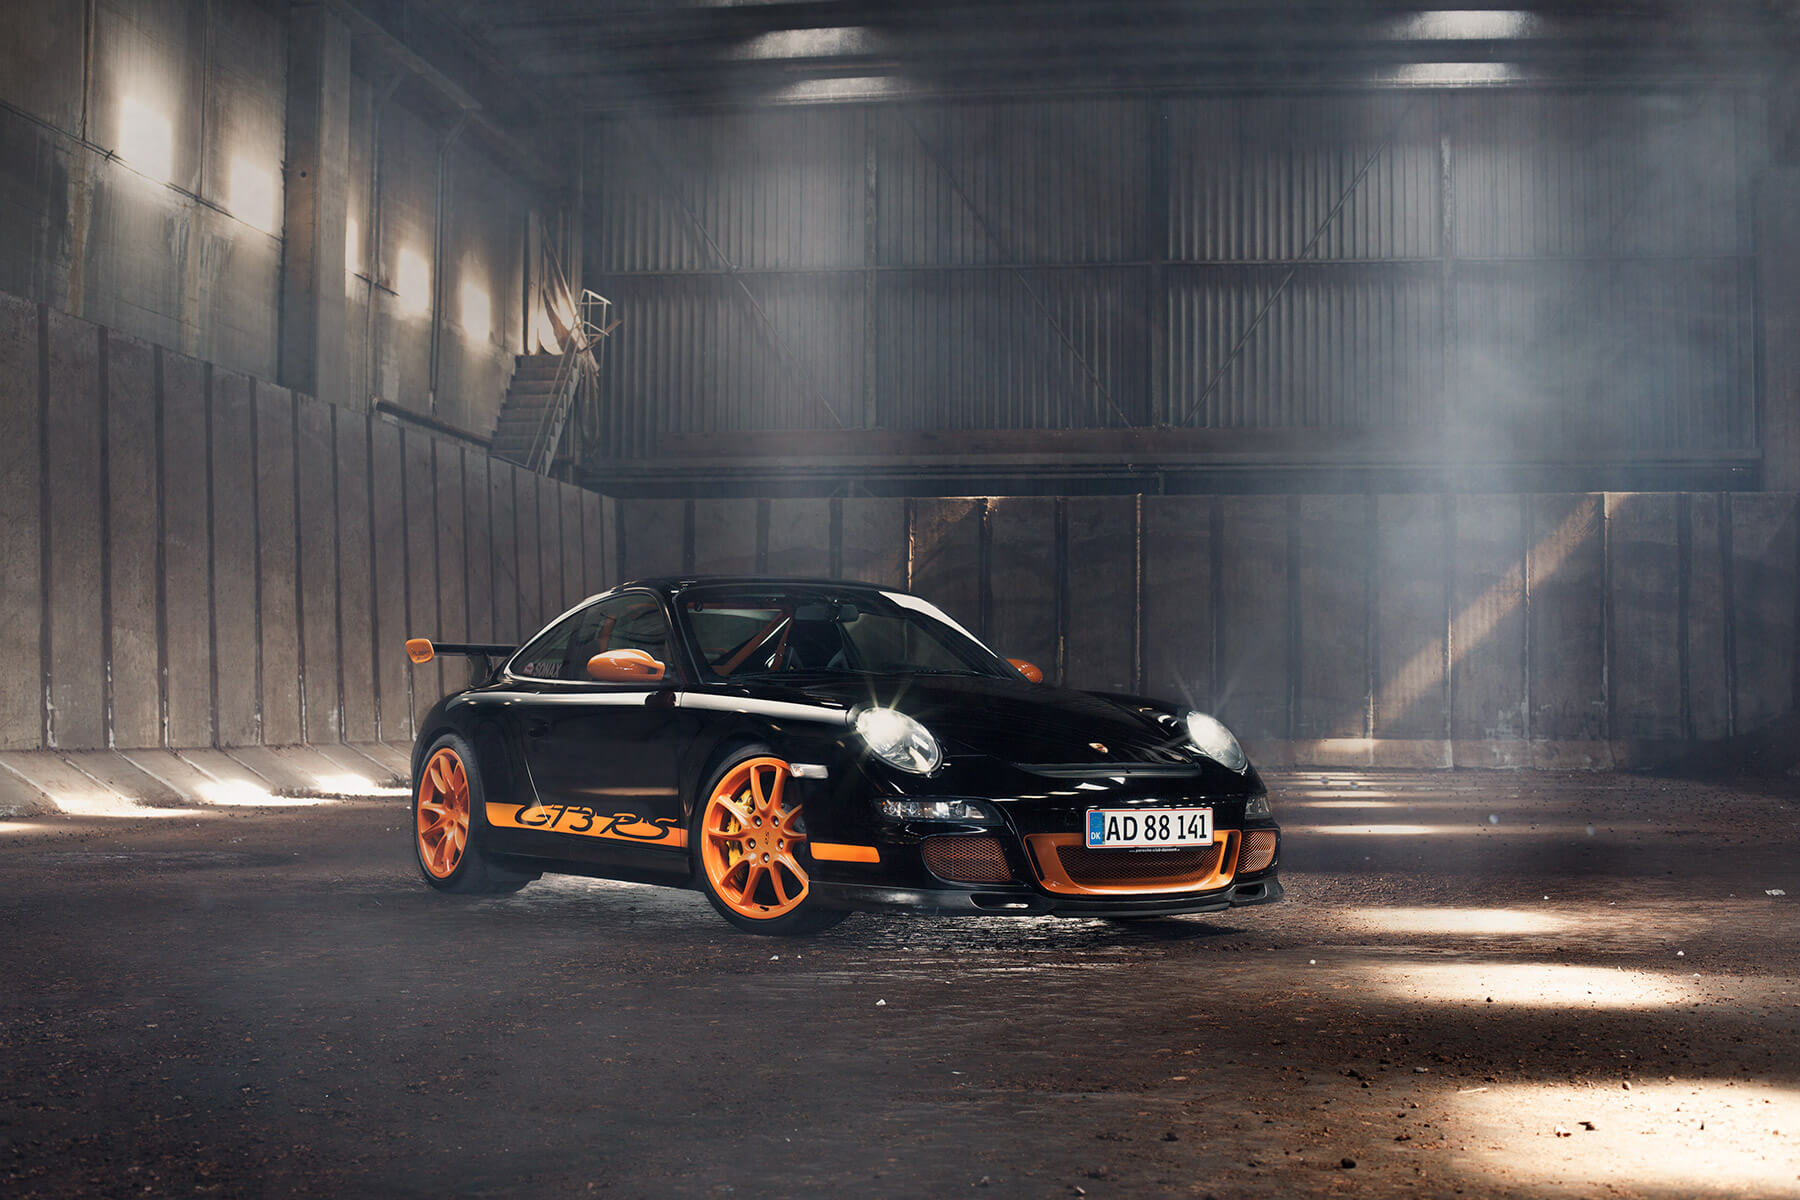 Porsche 911 GT3 RS in black and orange - photography was taking in a barn